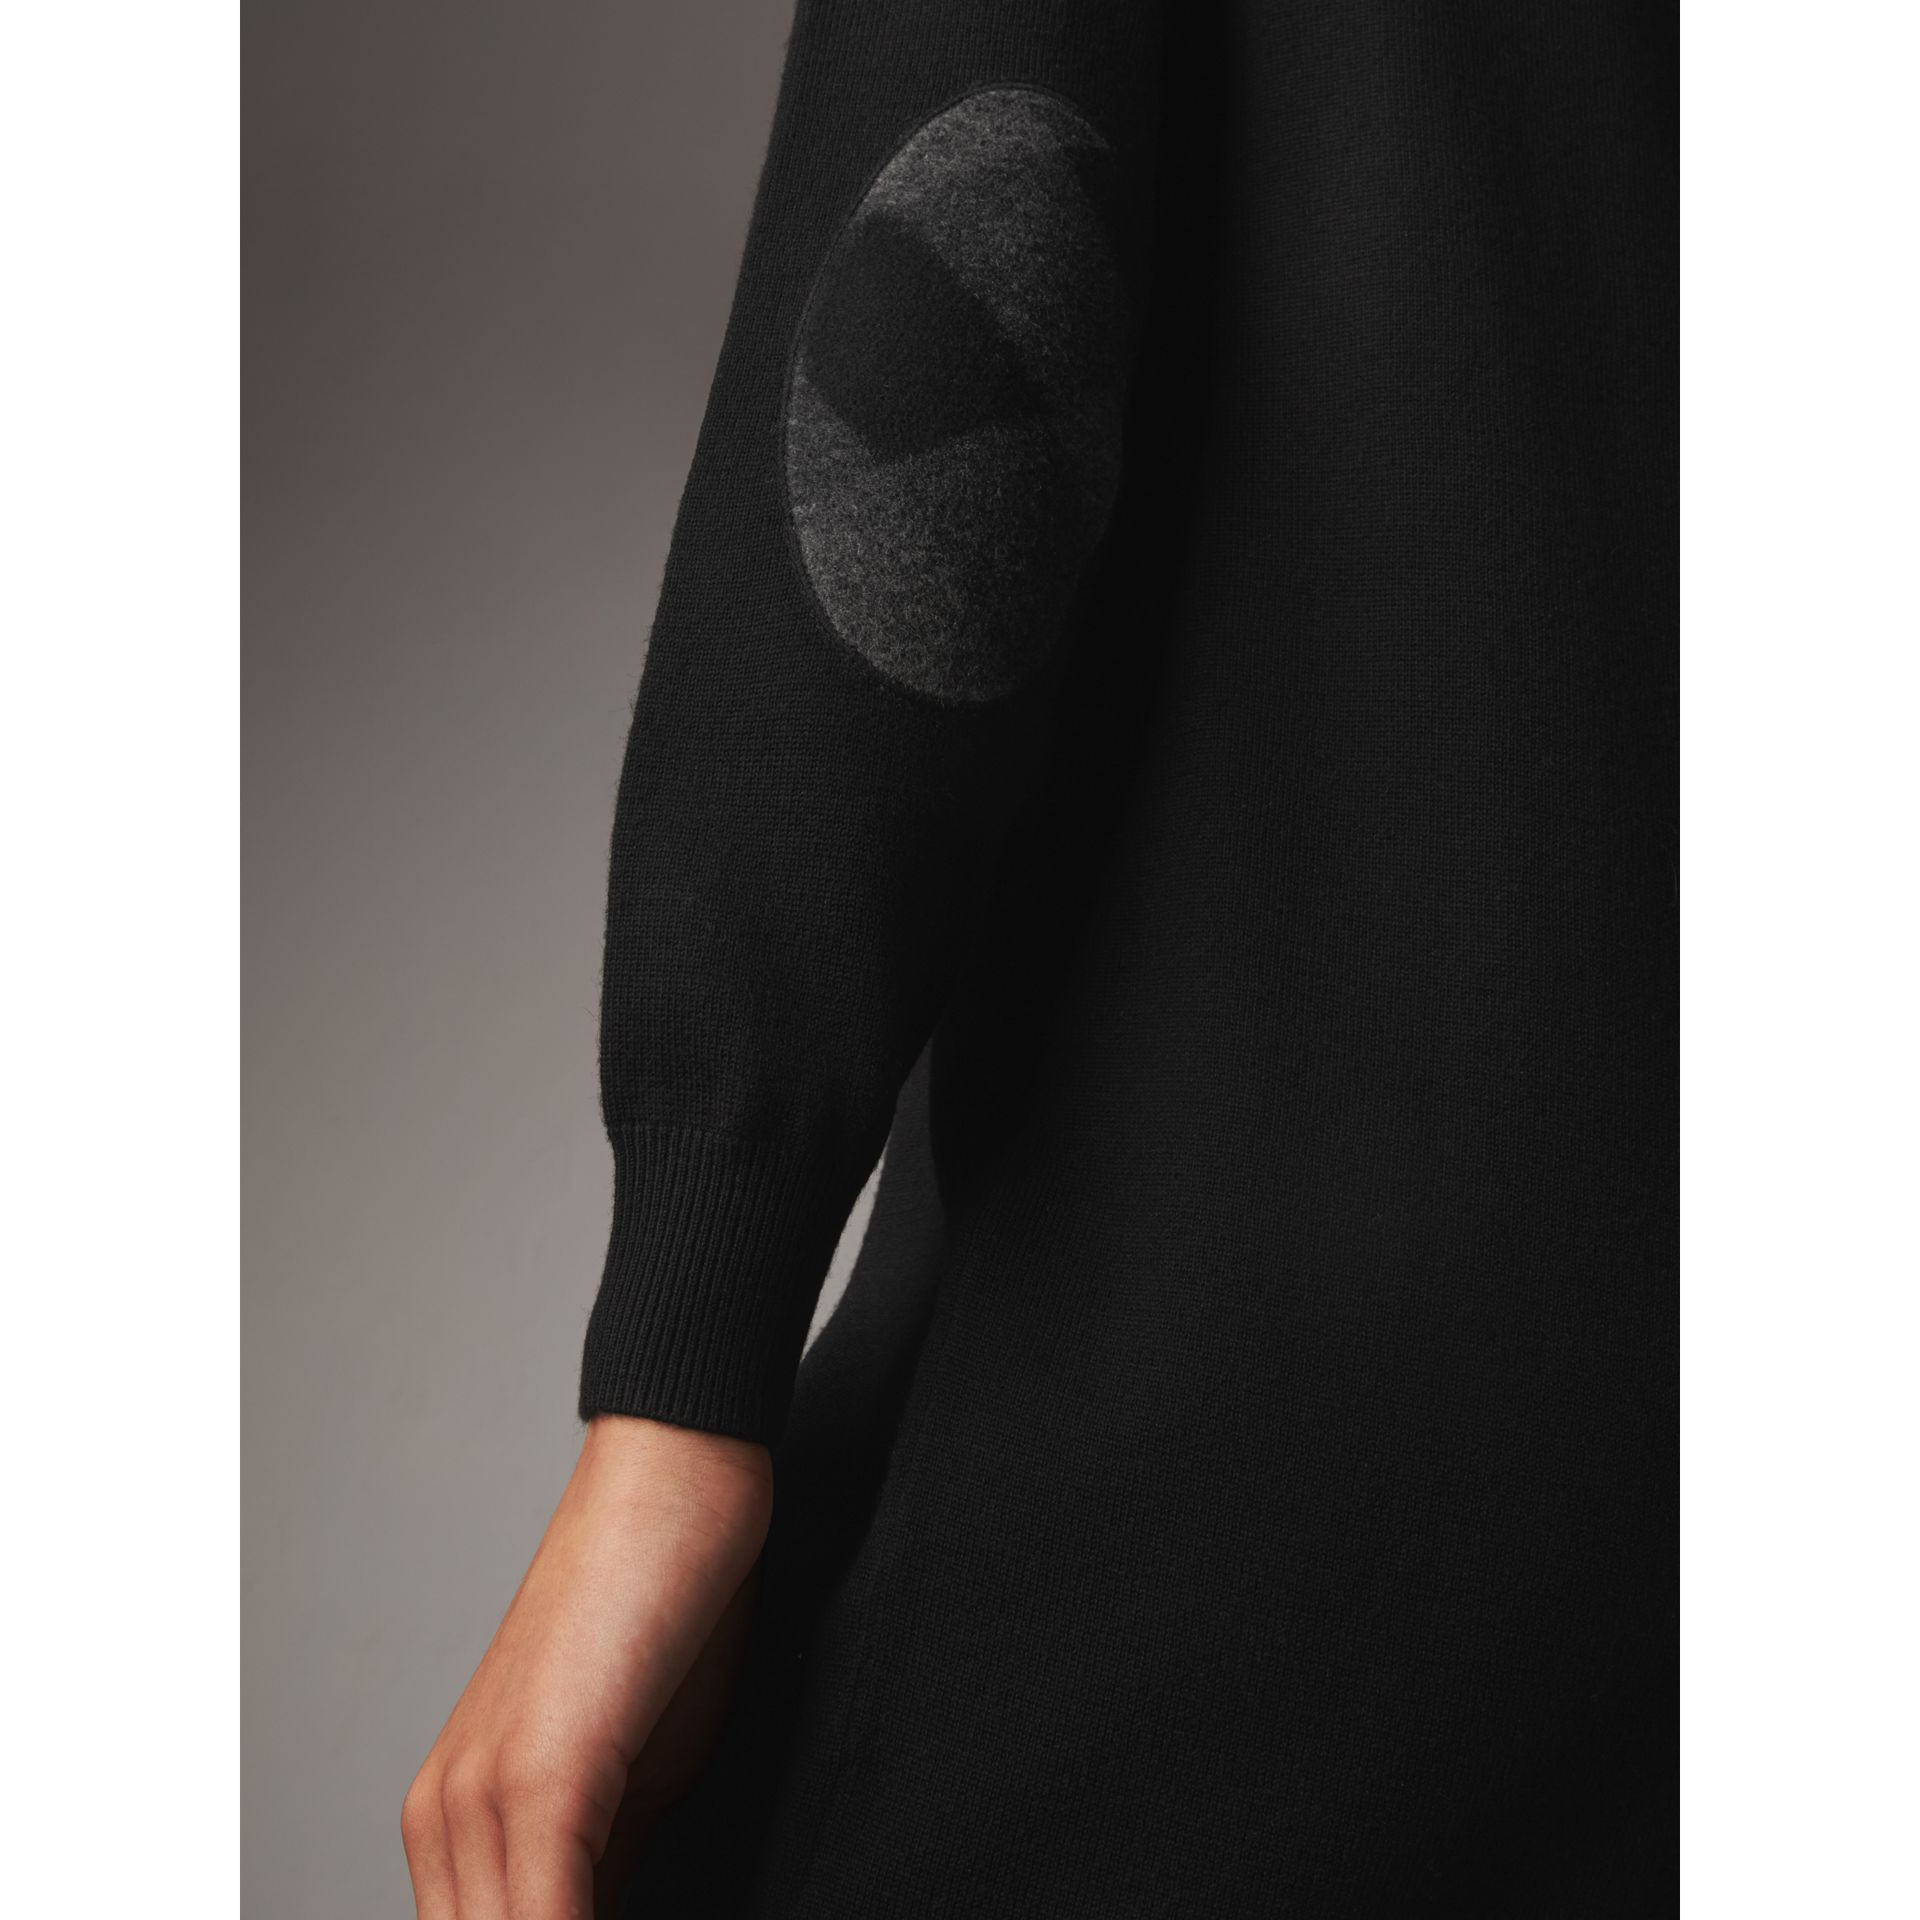 Check Elbow Detail Merino Wool Sweater Dress in Black - Women | Burberry United Kingdom - gallery image 1